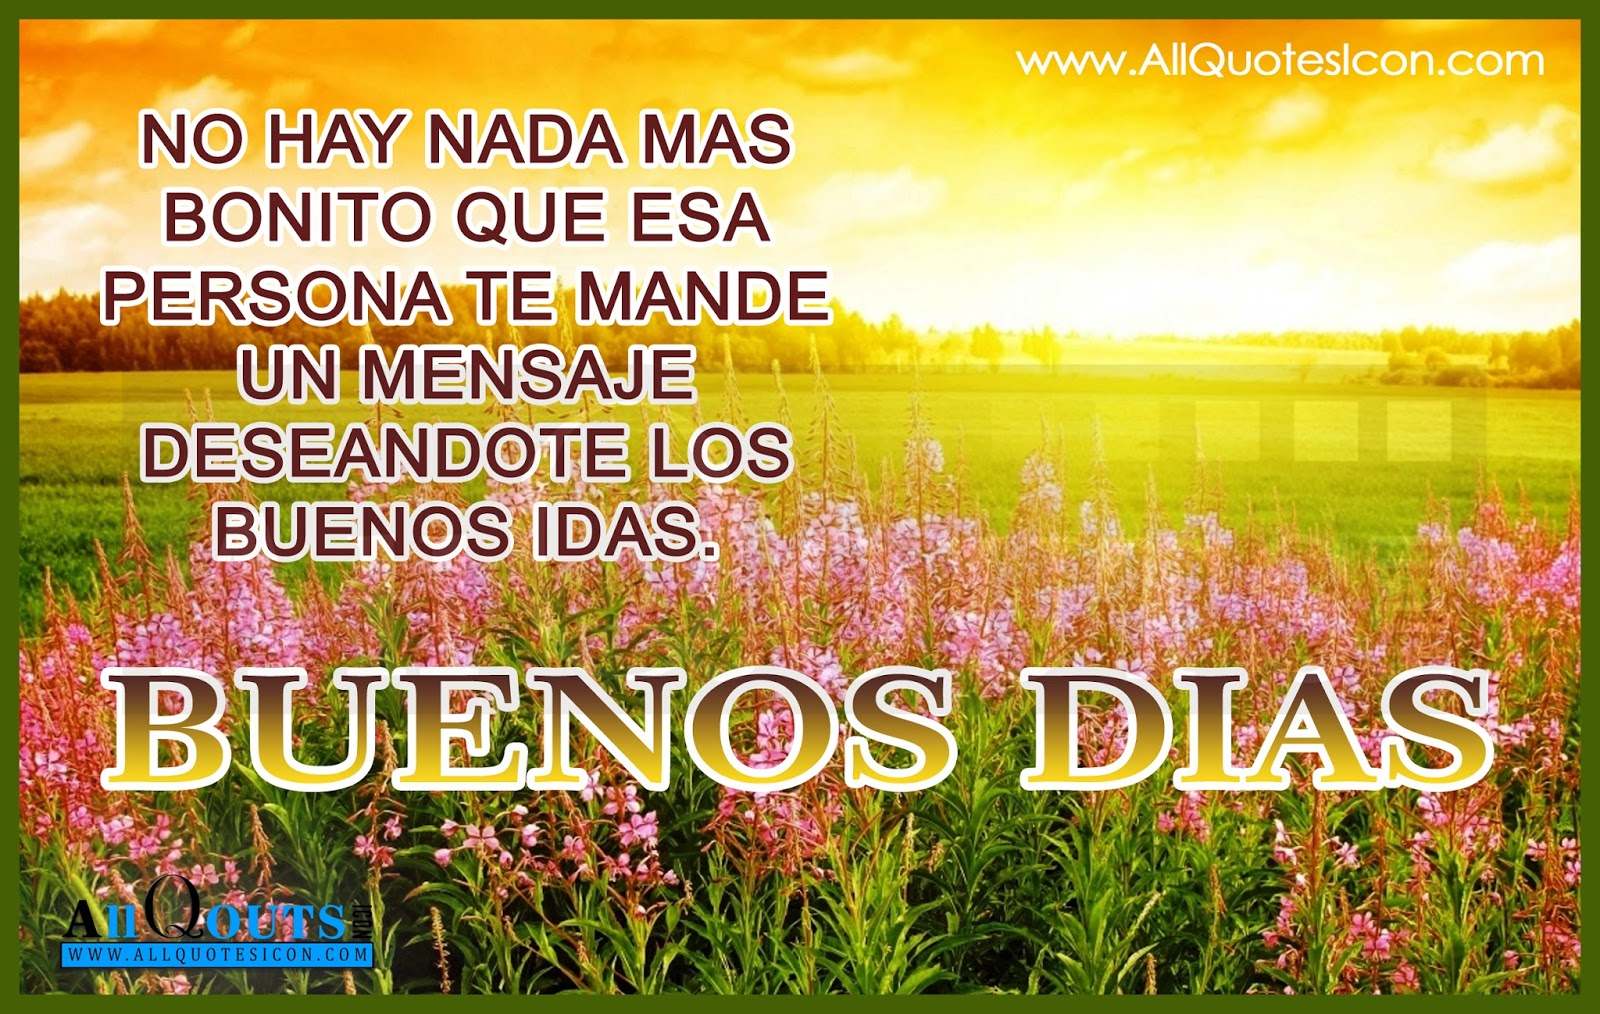 Good Morning In Spanish Is What : Good morning quotes in spanish allquotesicon